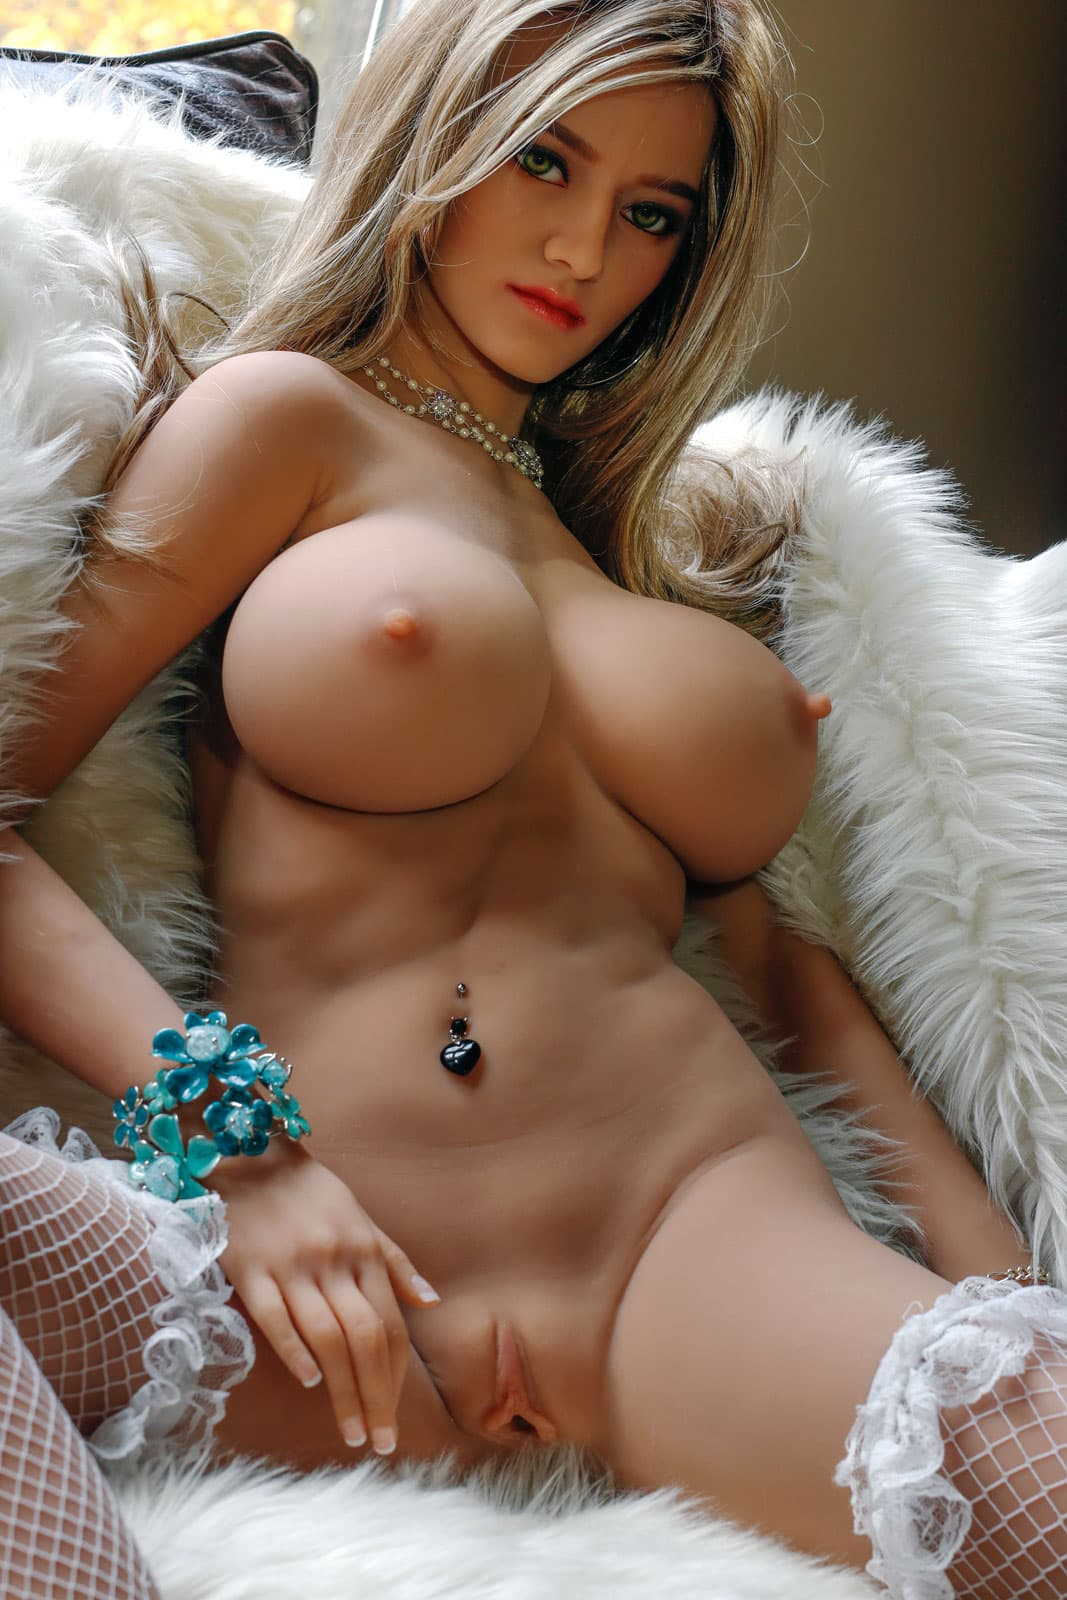 faune 161cm blonde big boobs athletic tan skin tpe sex doll(8)